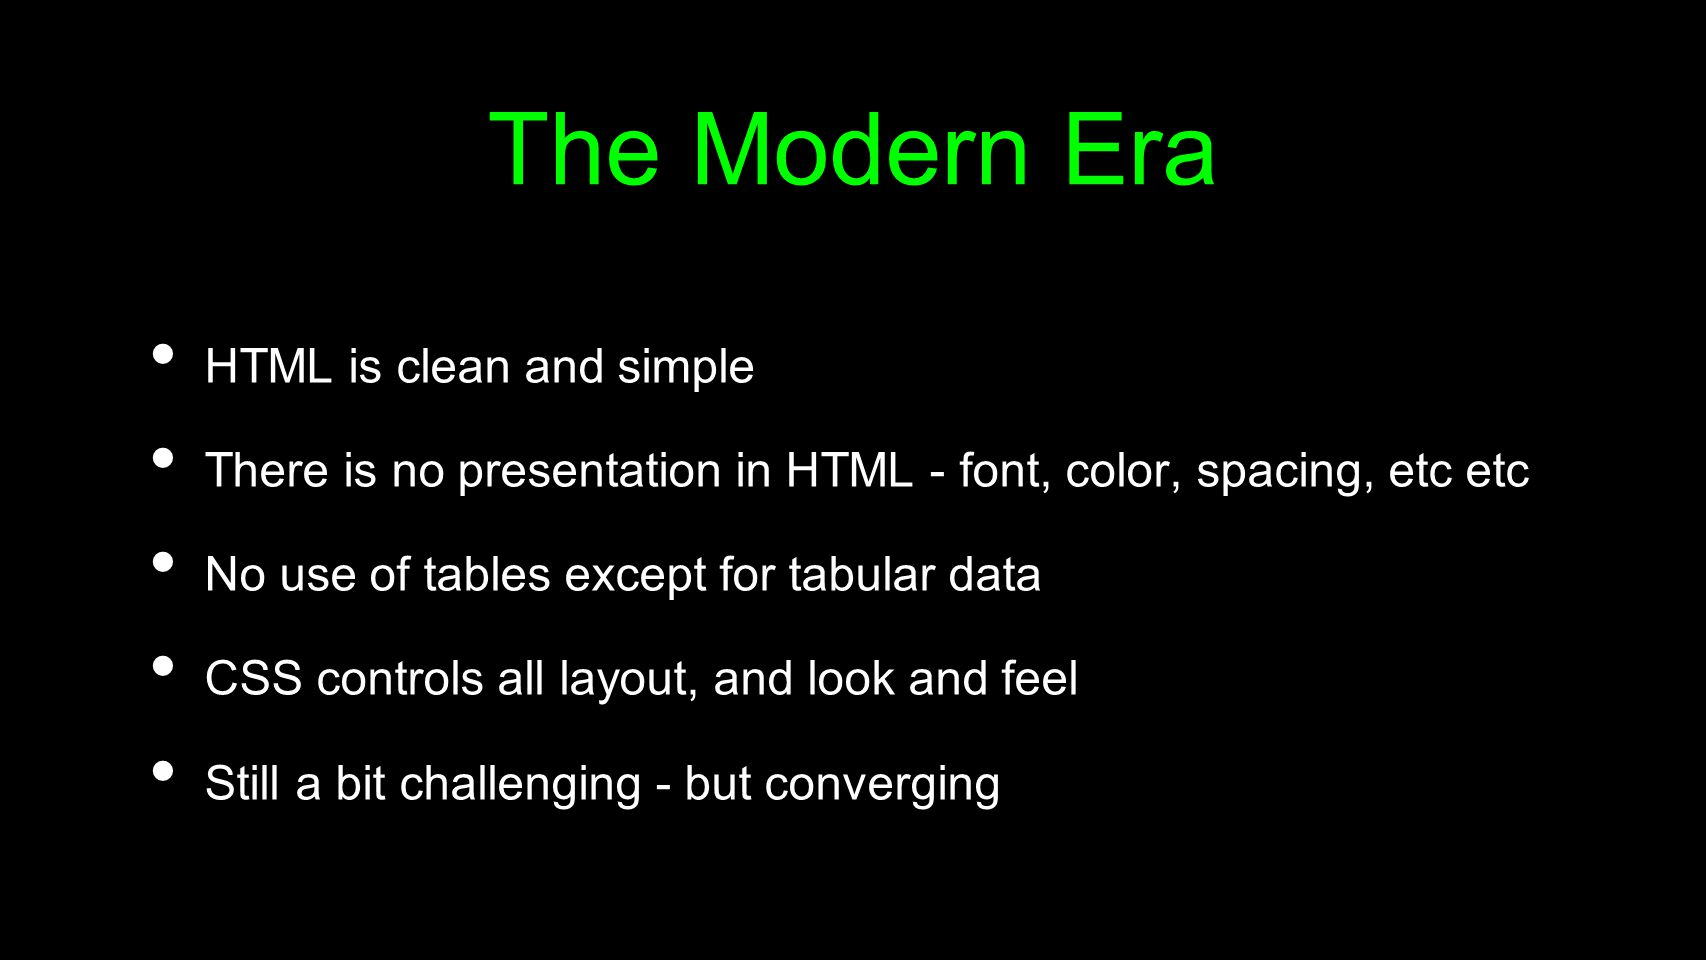 The Modern Era HTML is clean and simple There is no presentation in HTML - font, color, spacing, etc etc No use of tables except for tabular data CSS controls all layout, and look and feel Still a bit challenging - but converging